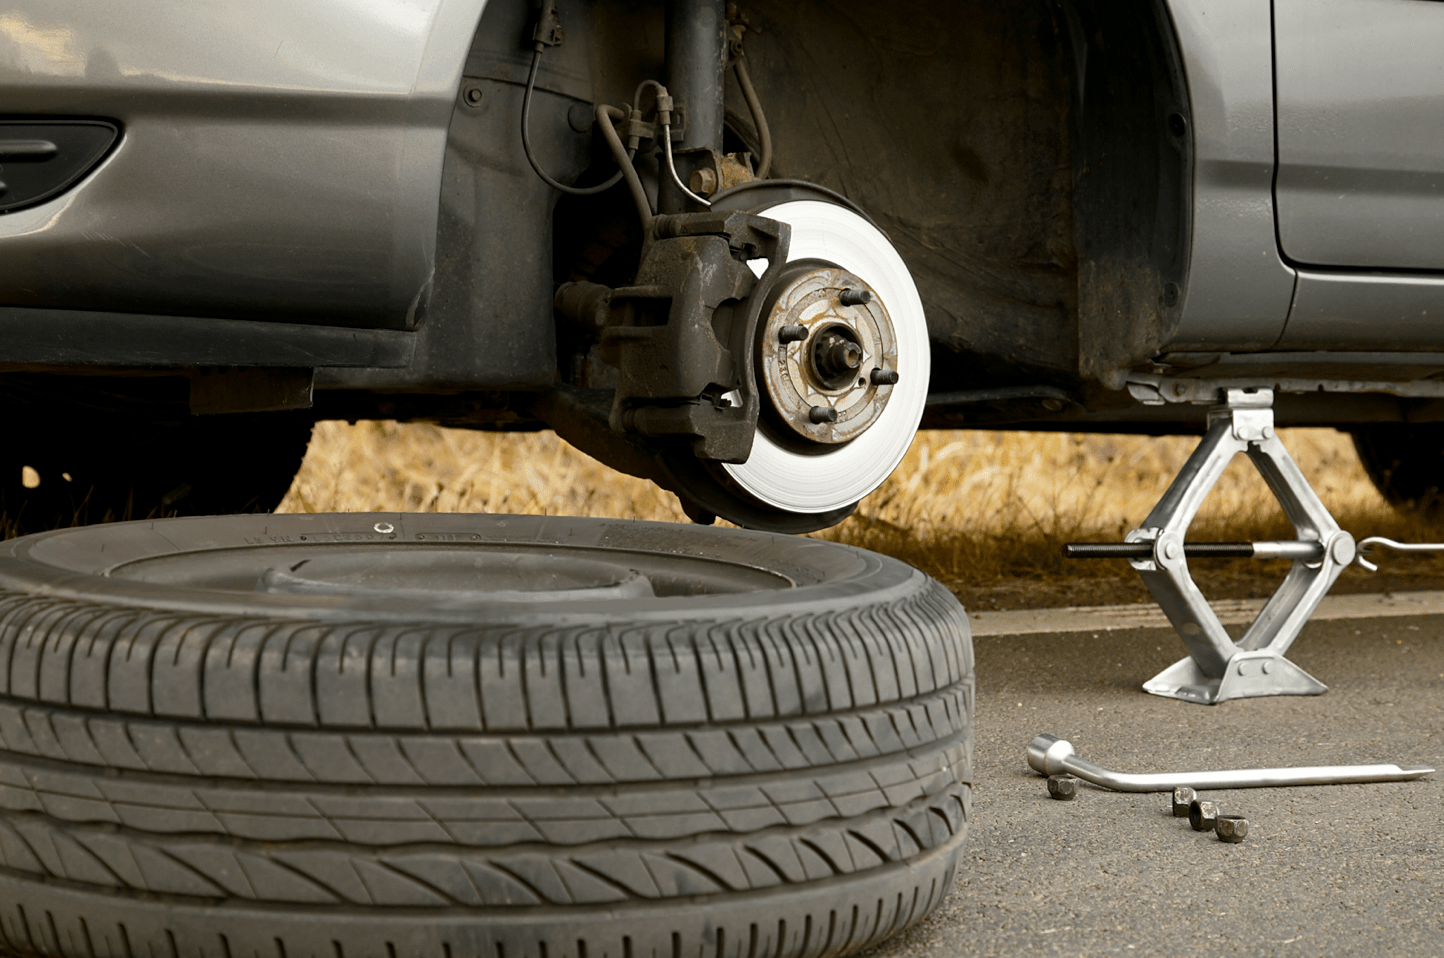 How to Change a Tire in Just a Few Minutes: Step-By-Step Instructions